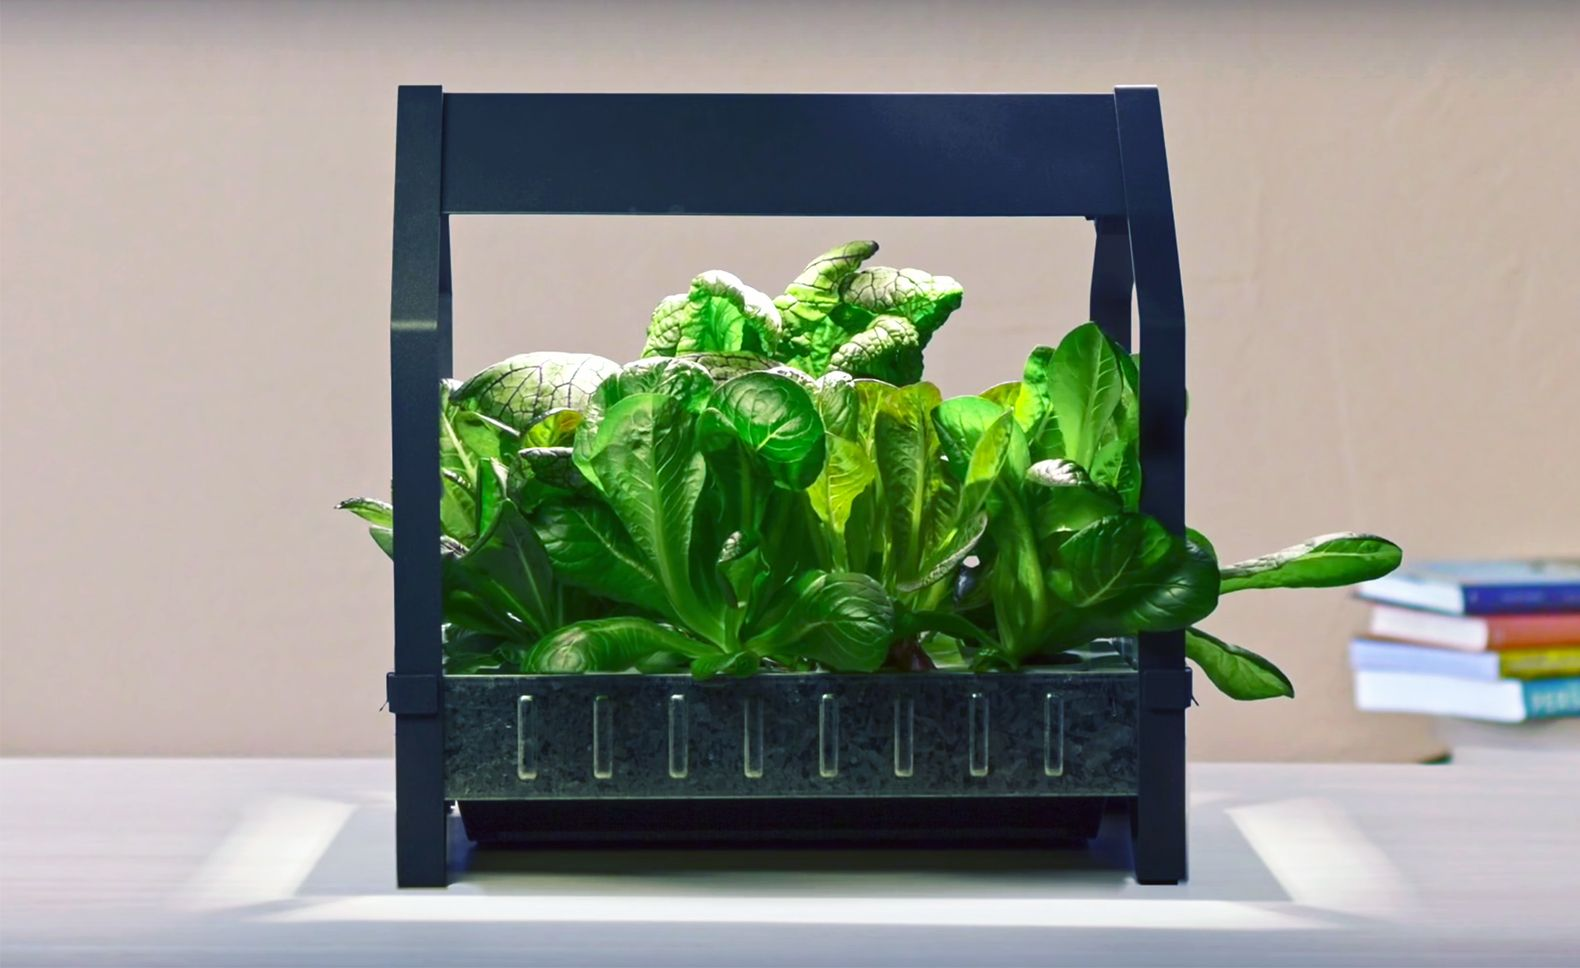 Ikea launches indoor garden that can grow food all yearround